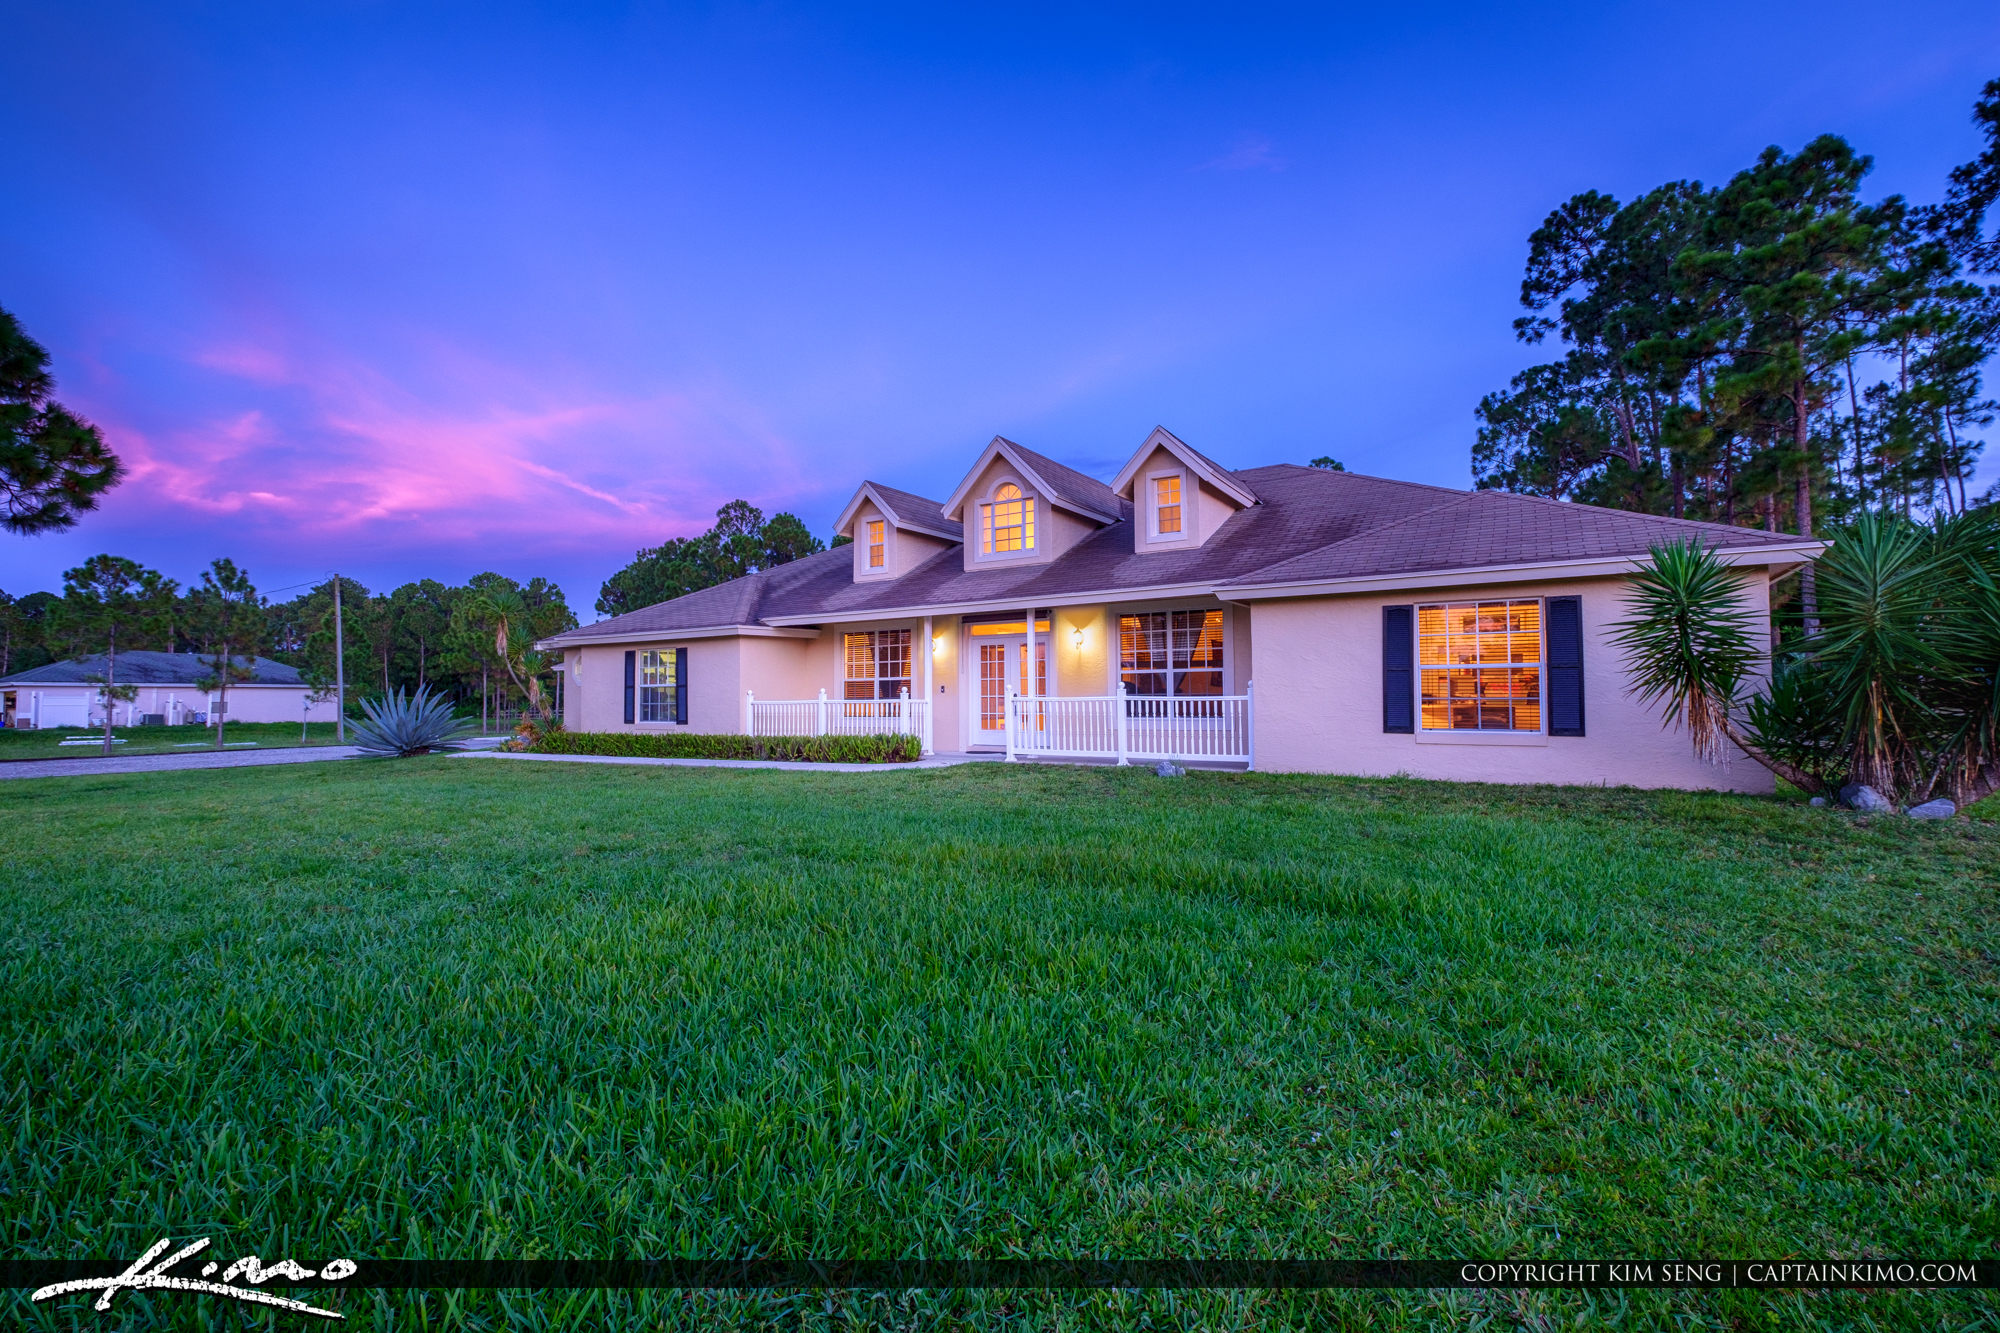 Real Estate Photography Loxahatchee Florida Twilight Front of Ho